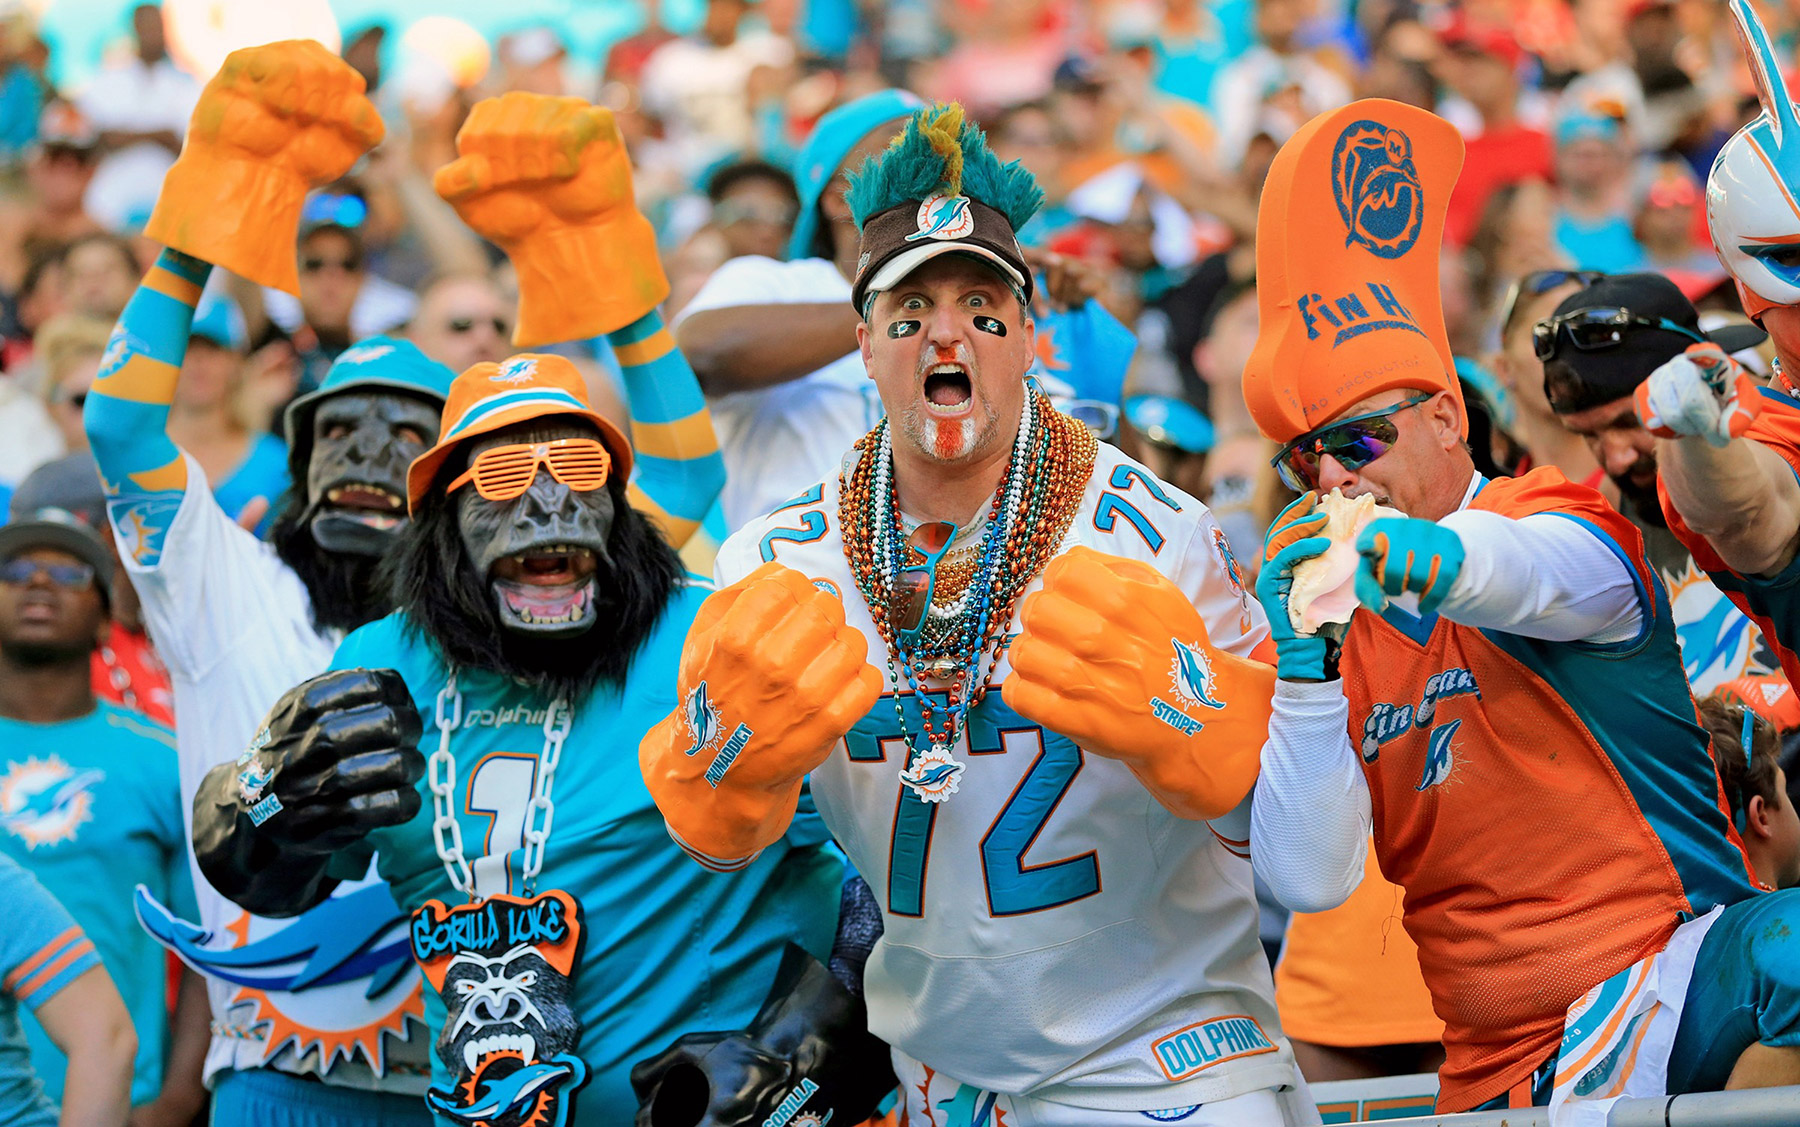 Miami Dolphins fans show their support as the Dolphins host the Tampa Bay Buccaneers